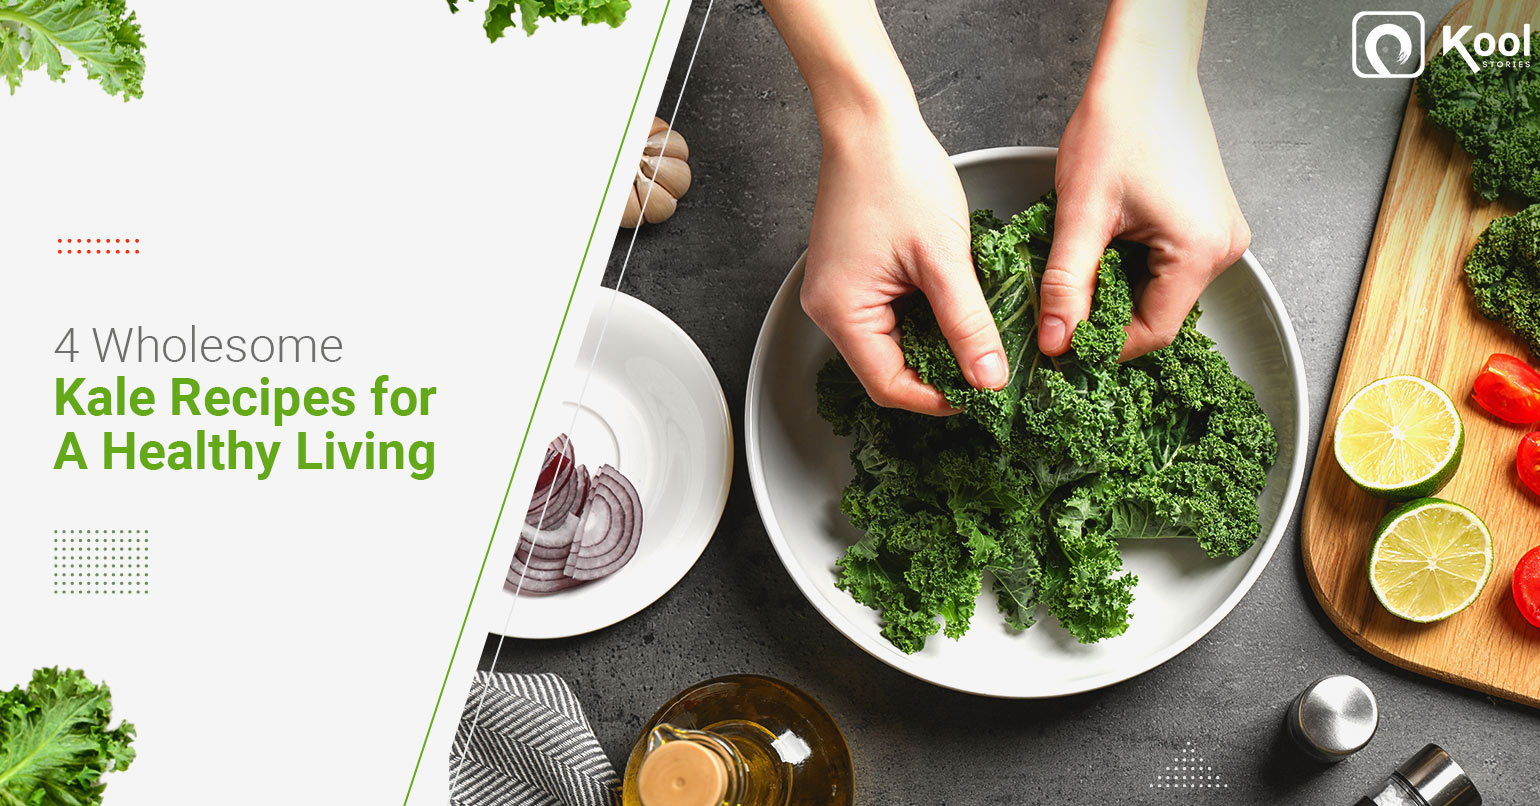 4 Wholesome Kale Recipes for A Healthy Living